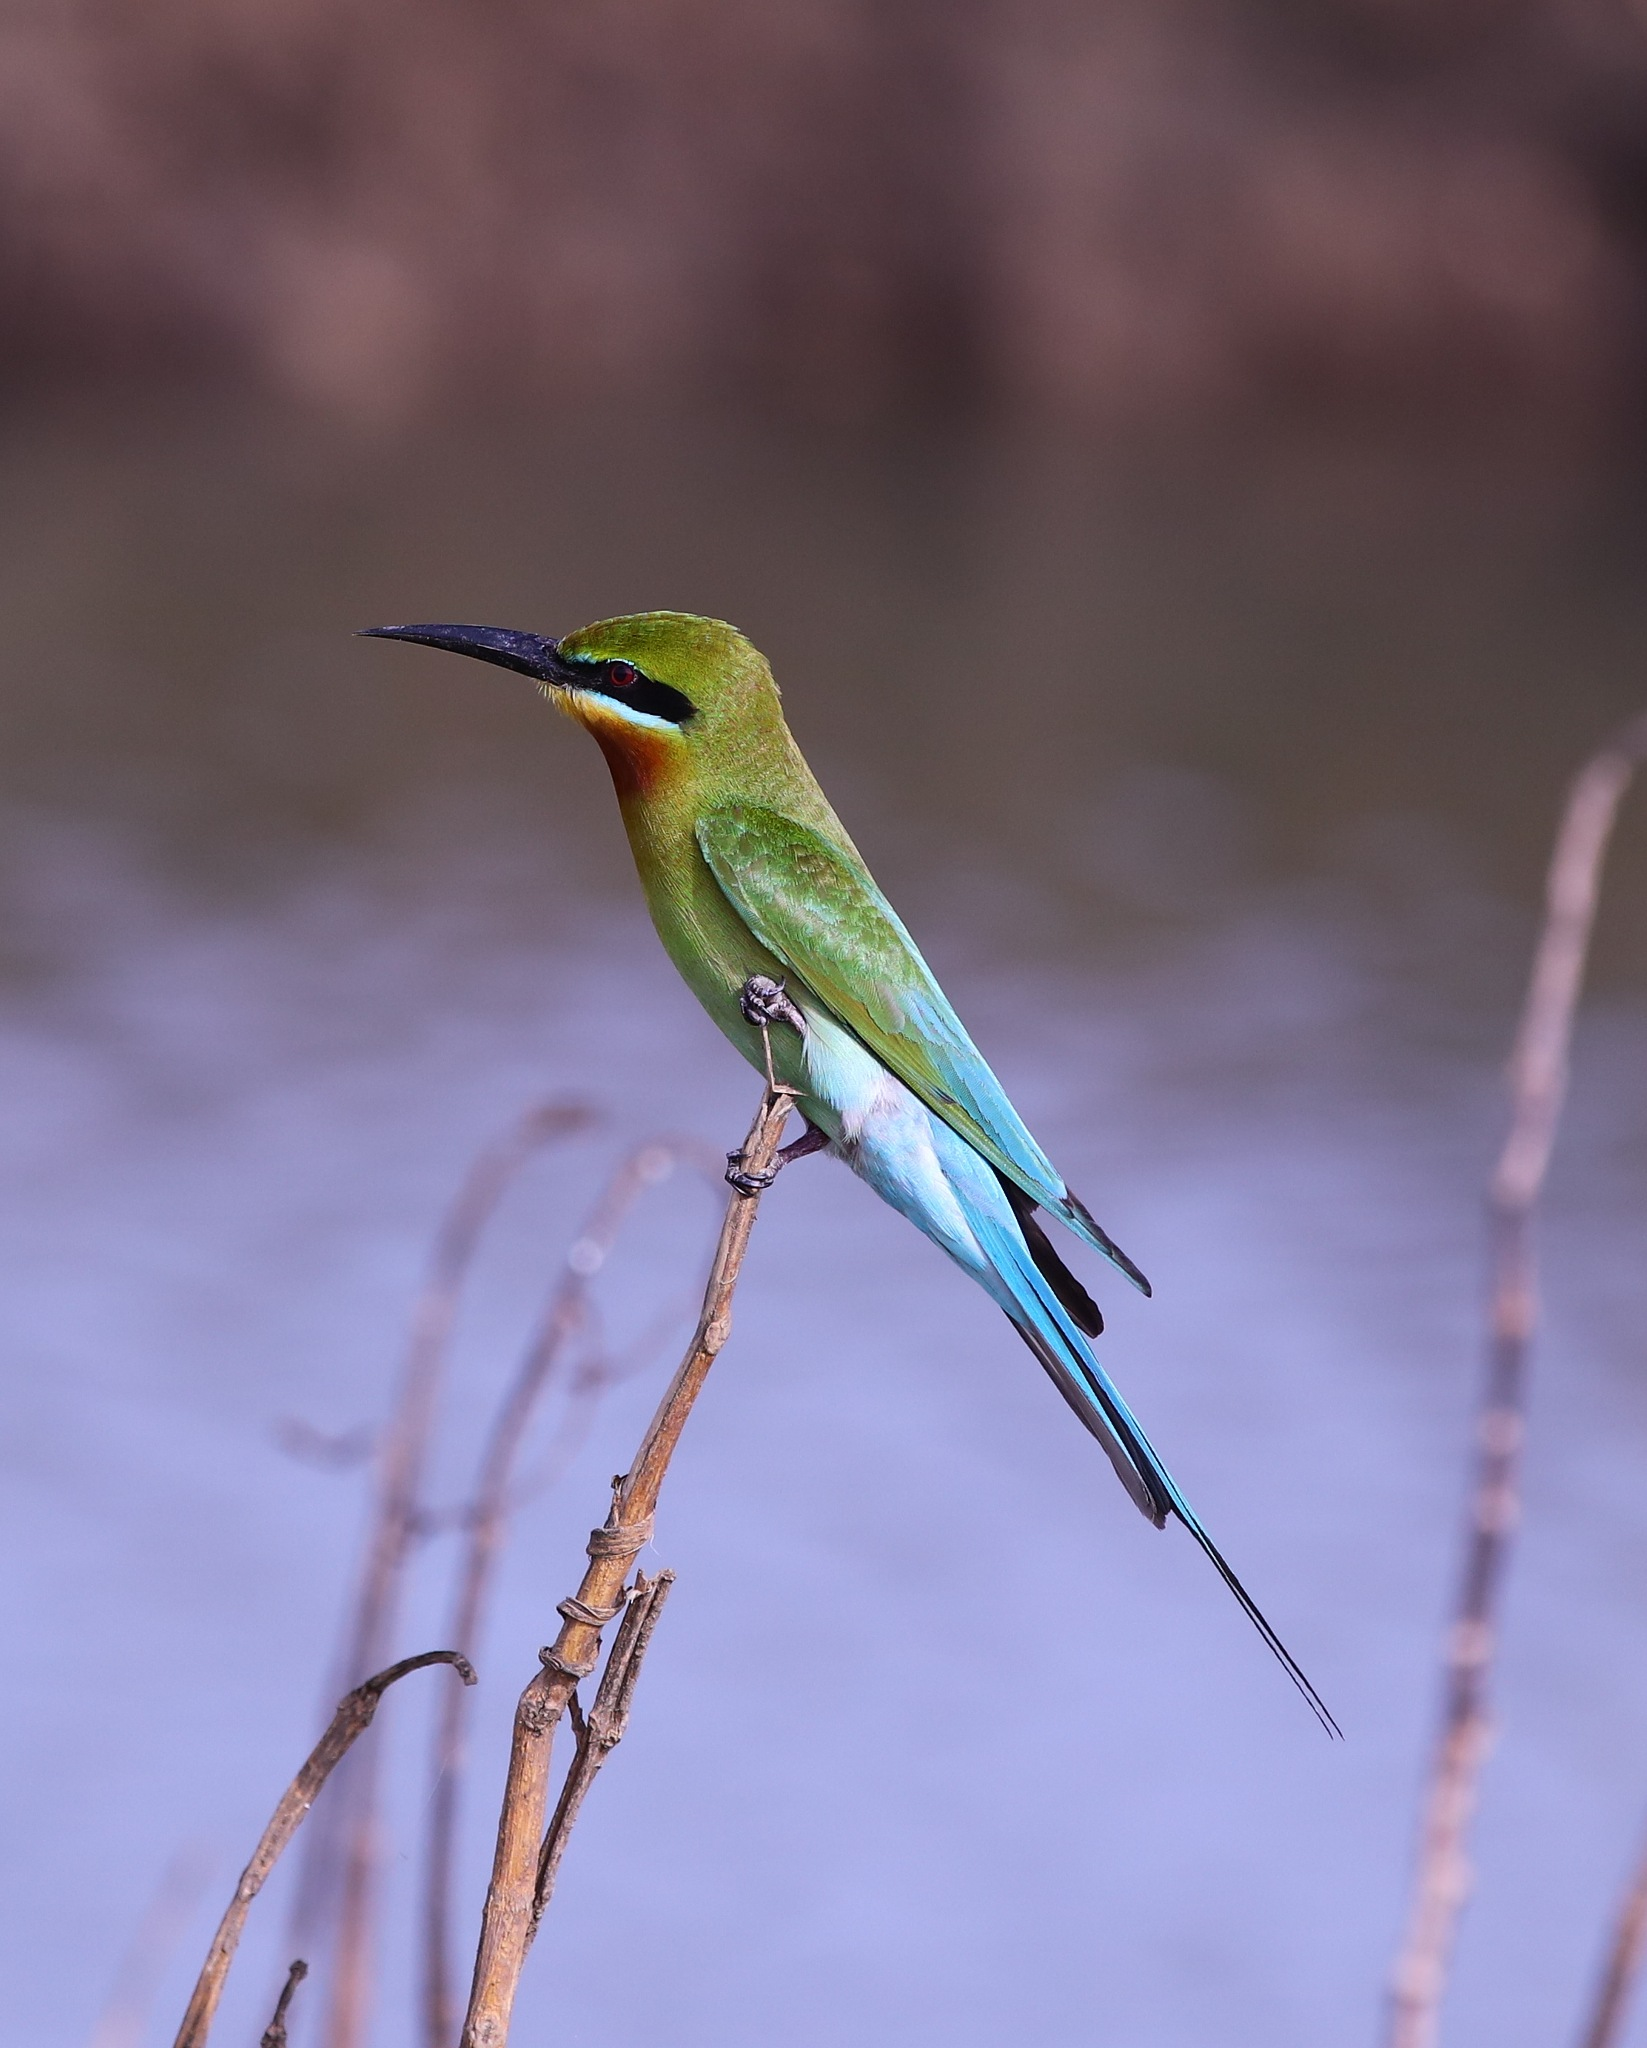 Blua Tailed Bee-eater by pstroyer